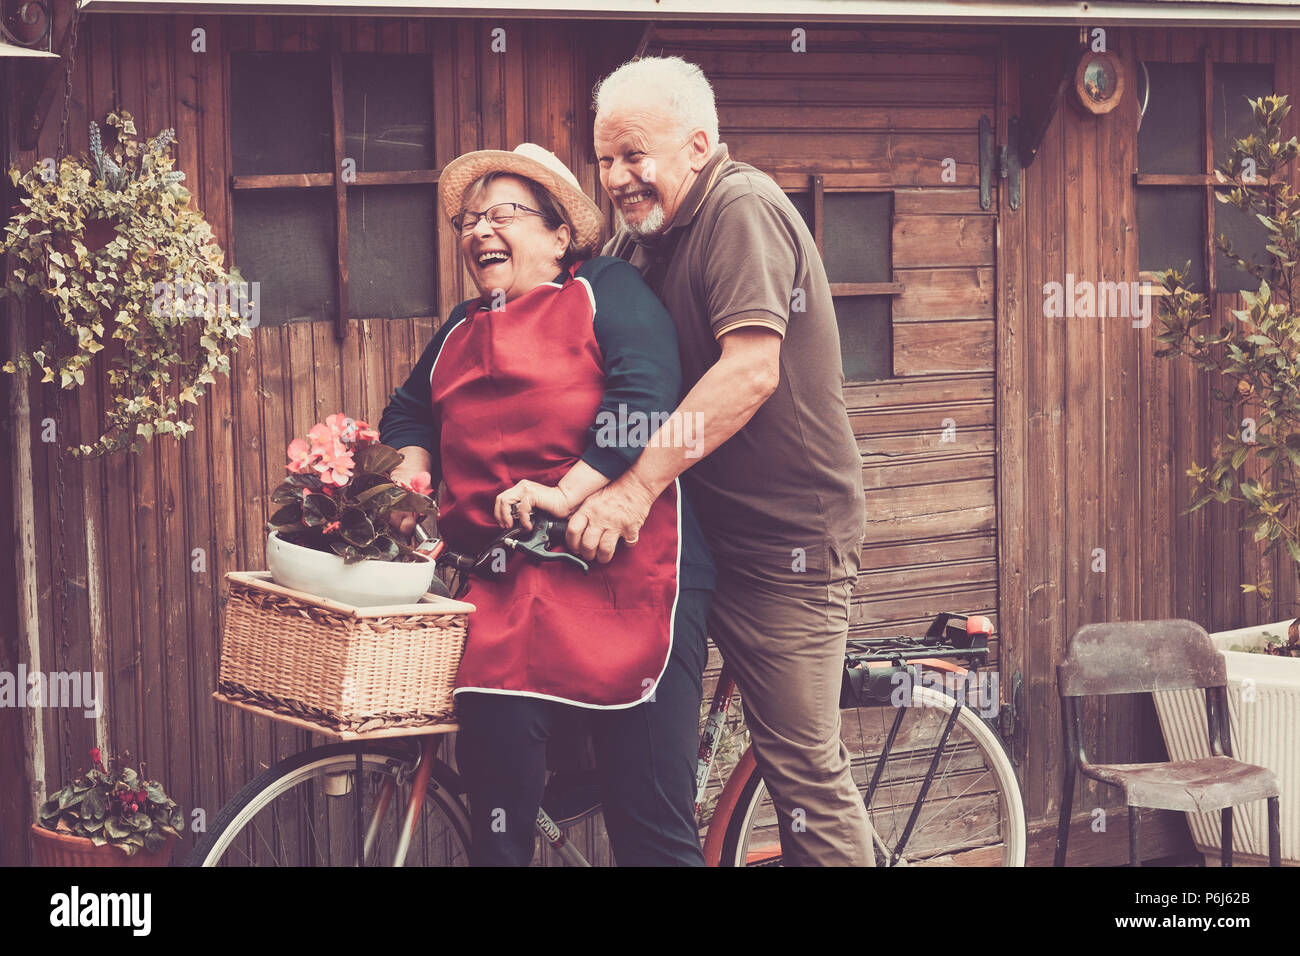 Nice caucasian people enjoy leisure outdoor both on a single bike lauhing like crazy. together funny moments at home outside. vintage filter and color - Stock Image